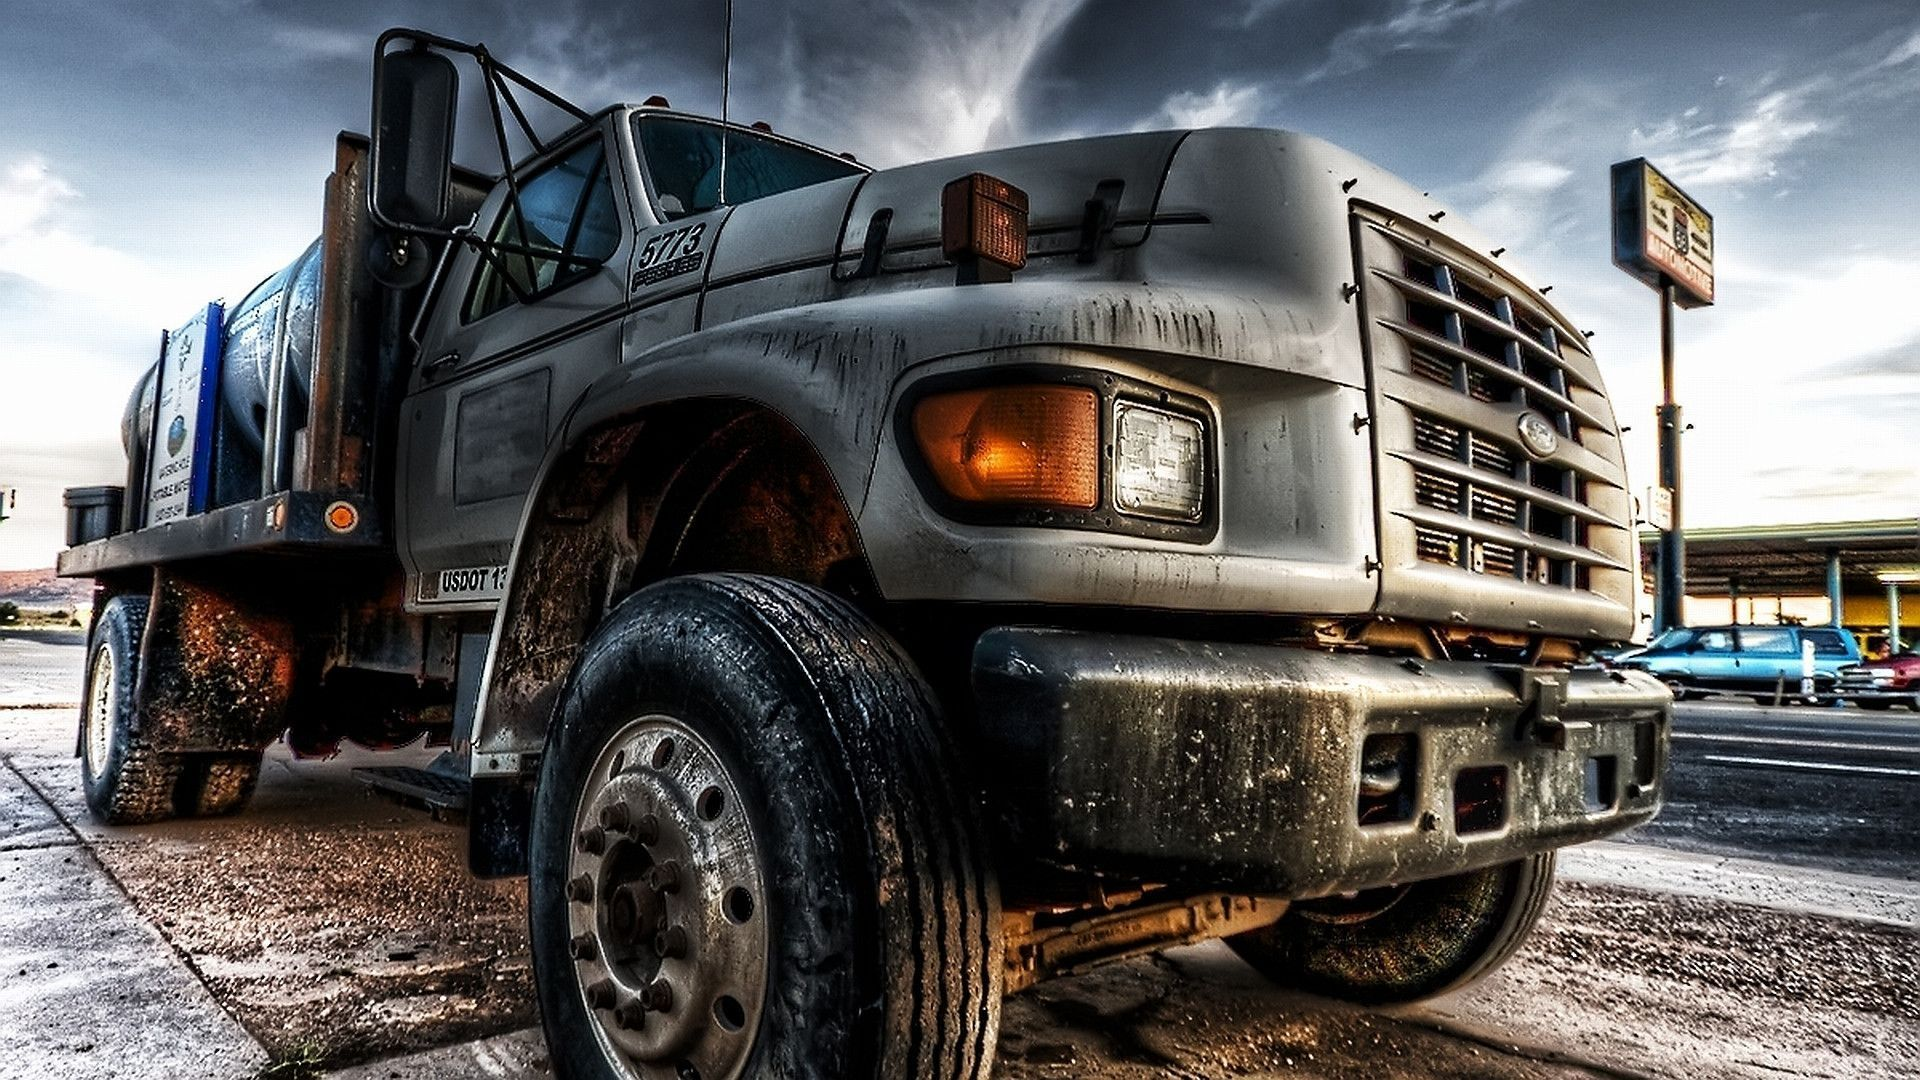 Girls And Trucks Wallpapers 1920 1200 Truck Wallpapers 56 Wallpapers Adorable Wallpapers Monster Trucks Trucks Vehicles